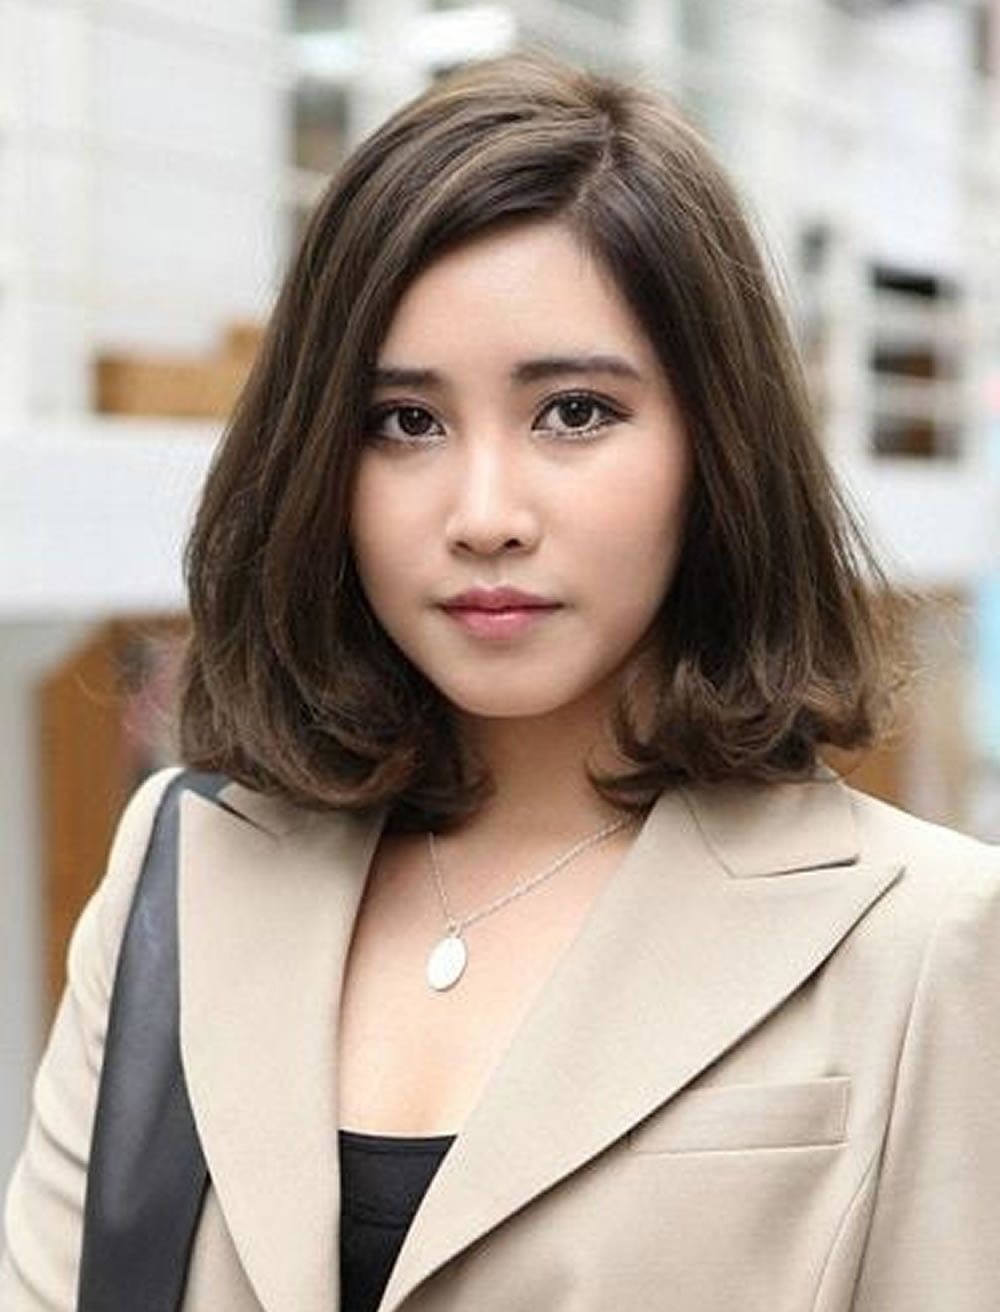 Womens Hairstyles: 50 Glorious Short Hairstyles For Asian Women For Summer